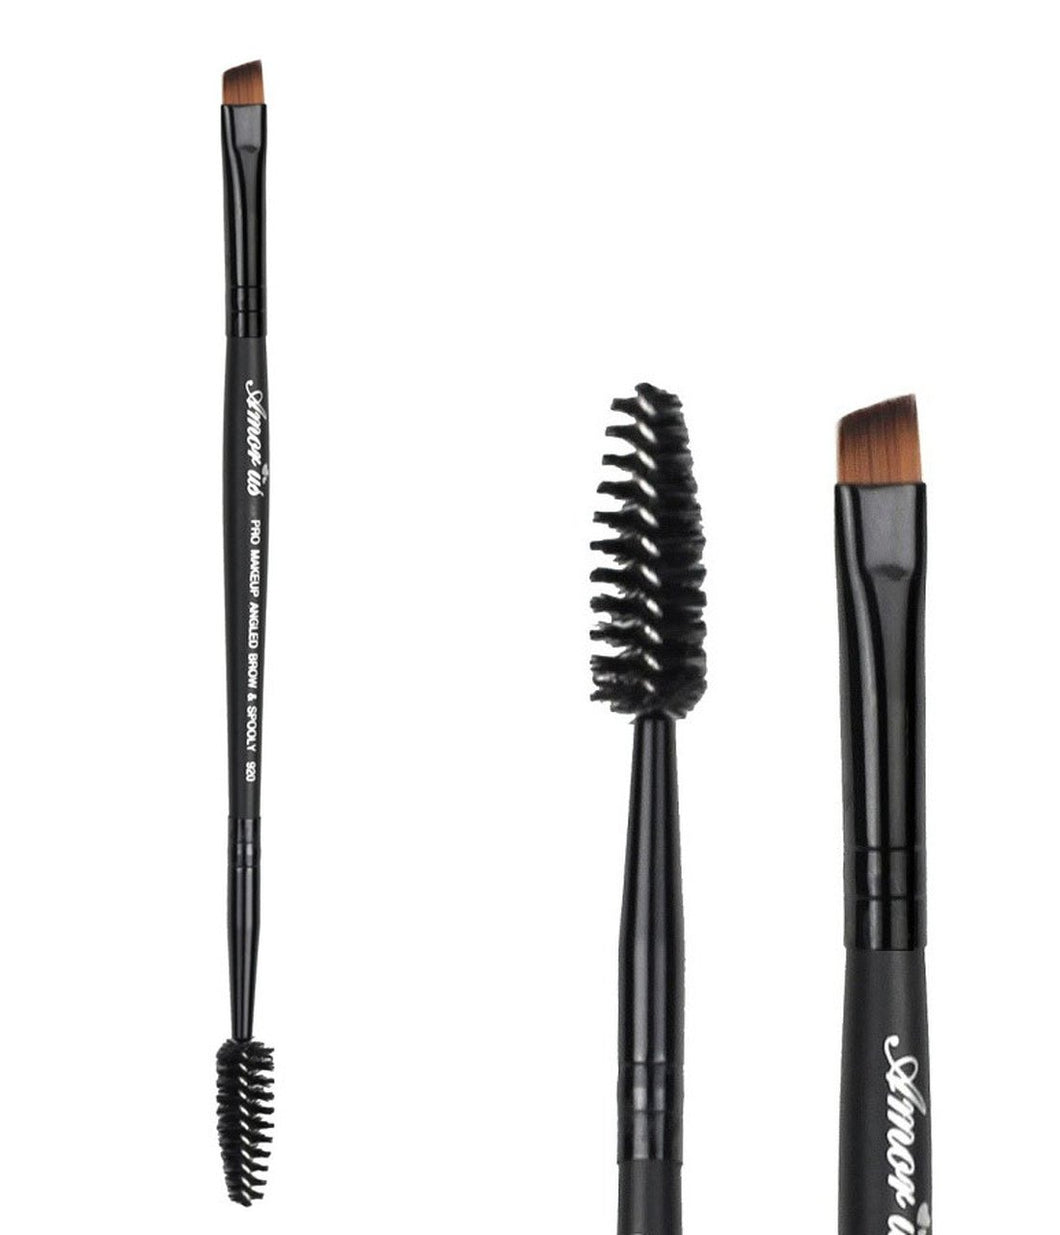 Professional Deluxe Duo Brow & Liner Brush